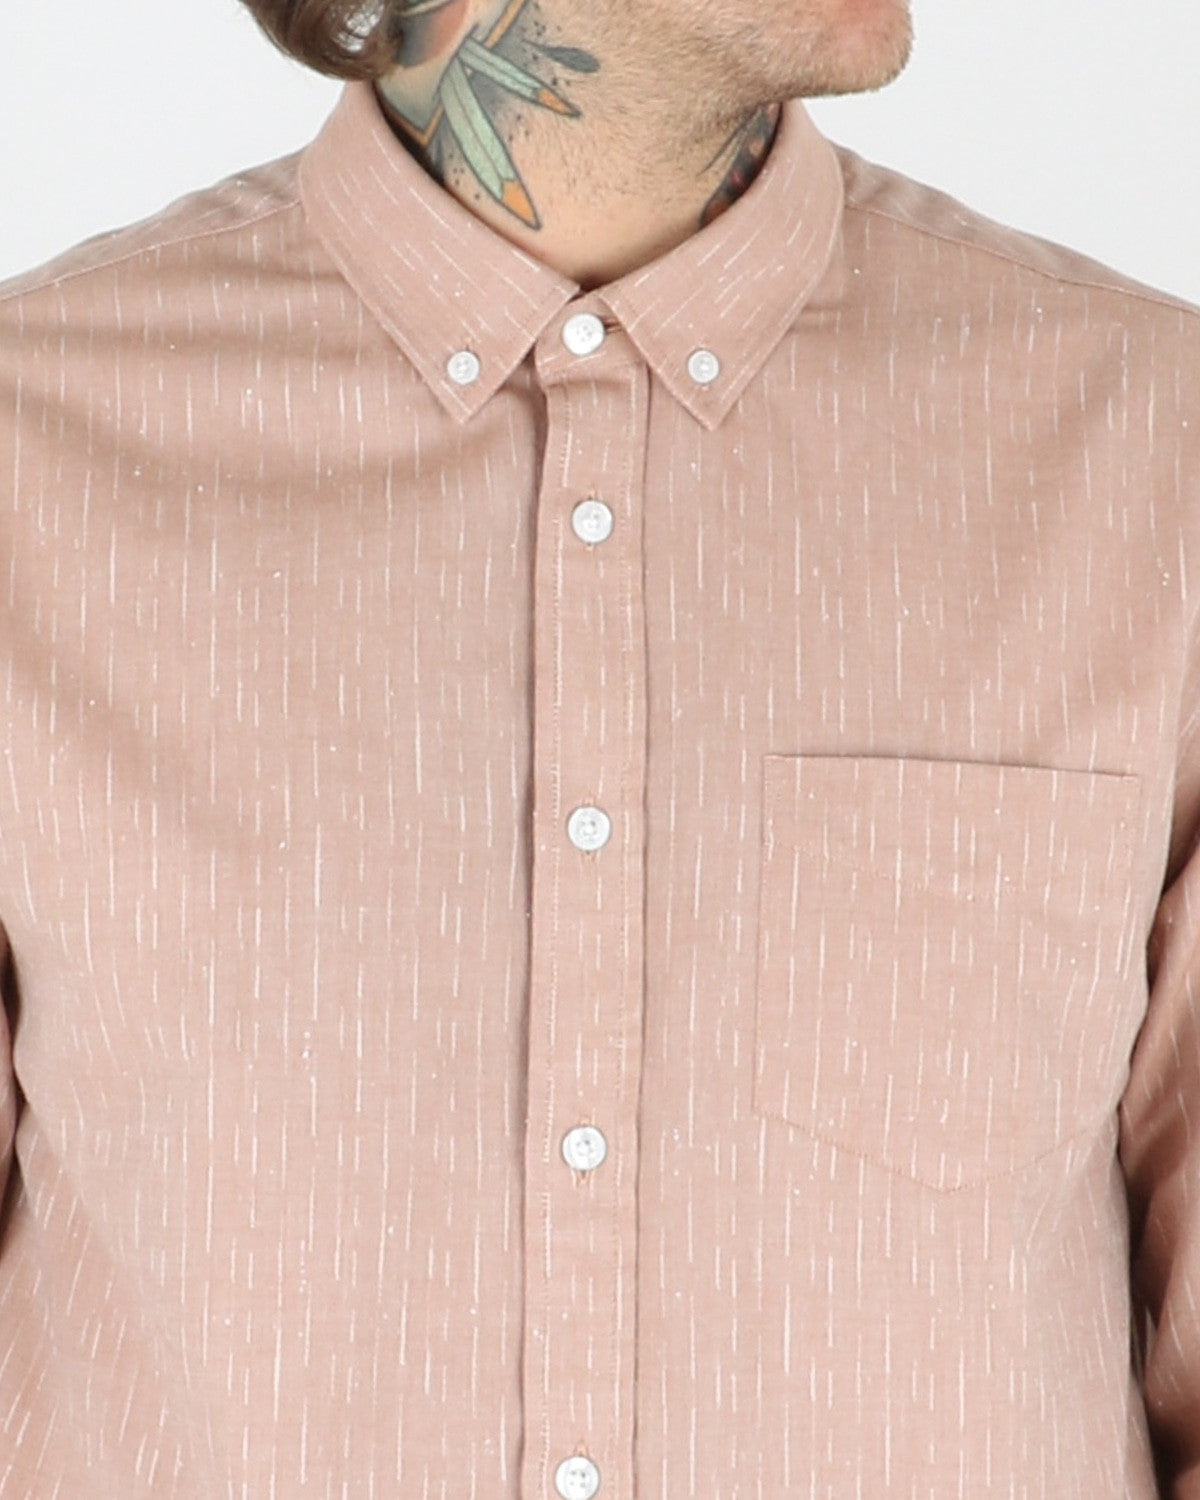 libertine libertine_hunter shirt_ochre_view_3_3